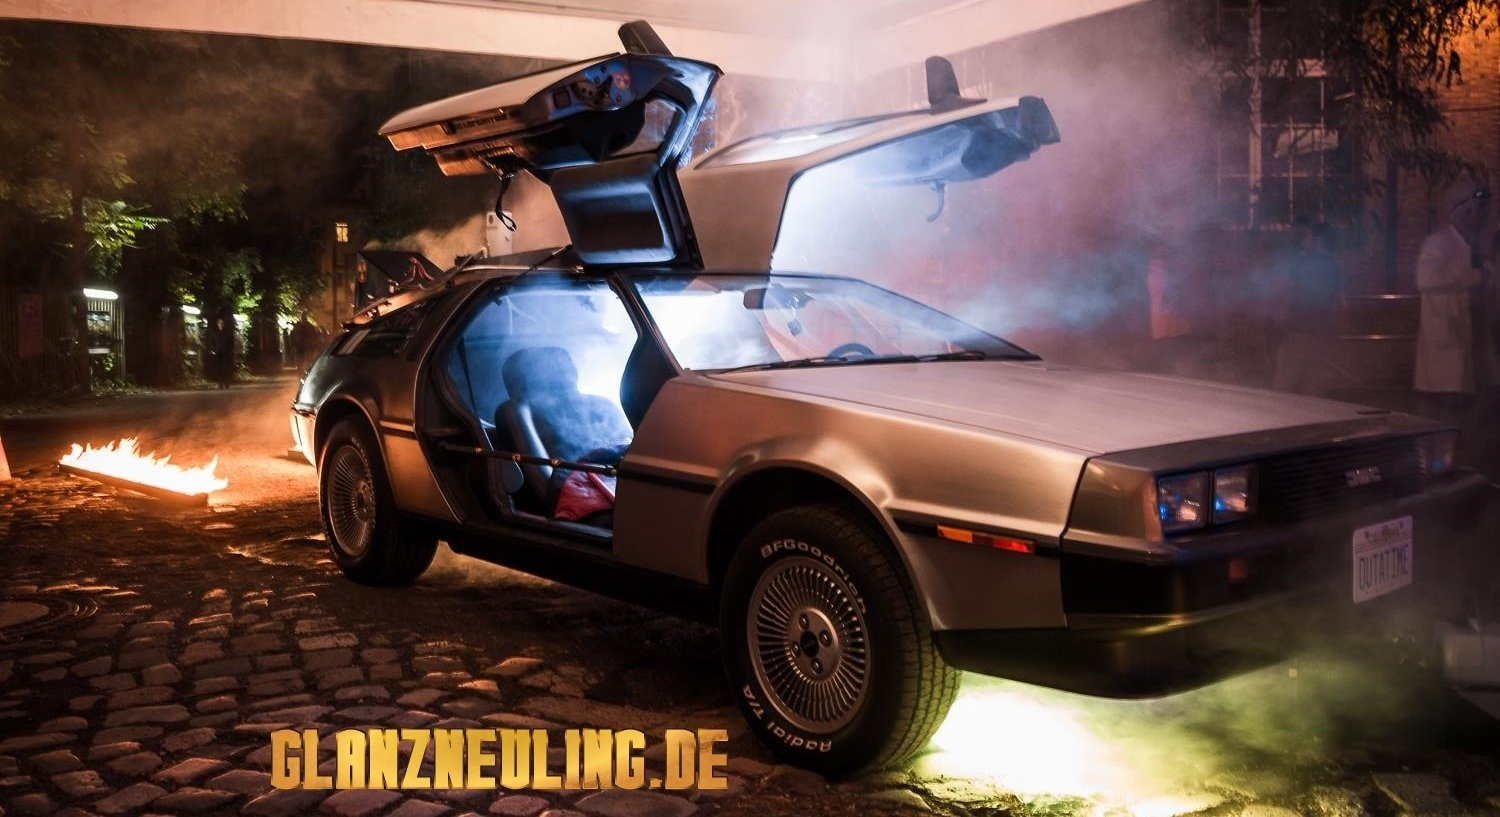 Special Effects am Delorean mieten